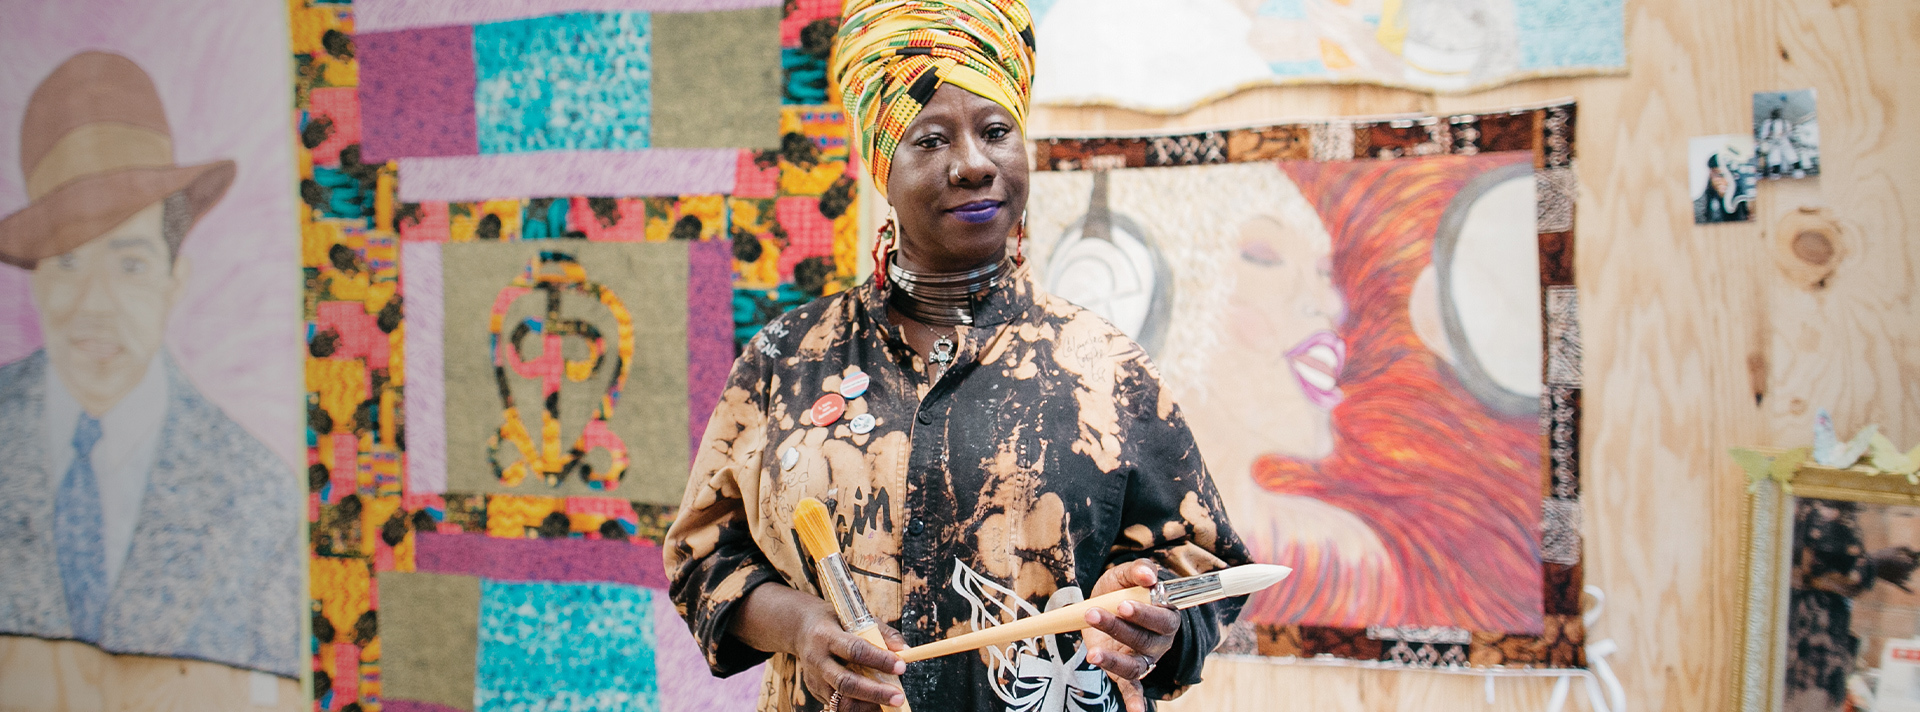 2017 Union Fellow Celeste Butler stands in front of two of her large quilts. She wears a yellow patterned head wrap and artist's smock, holding two paintbrushes. (Union fellowship header)